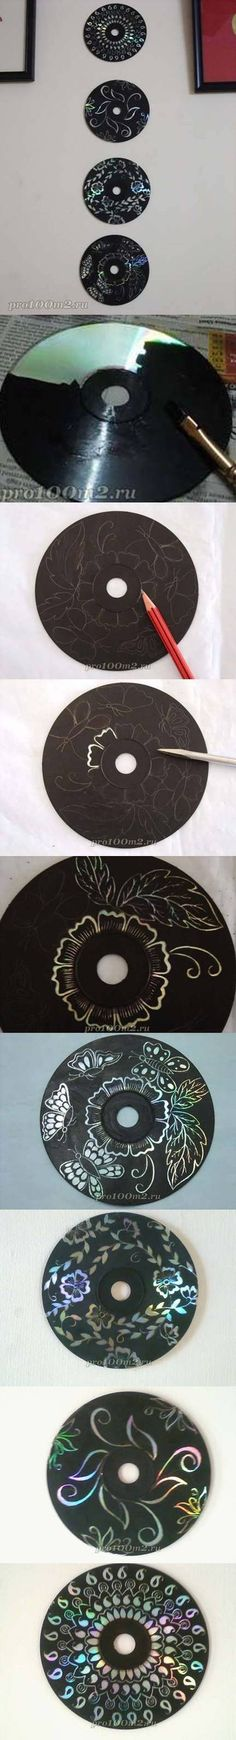 DIY Wall Decoration with CD DIY Wall Decoration with CD